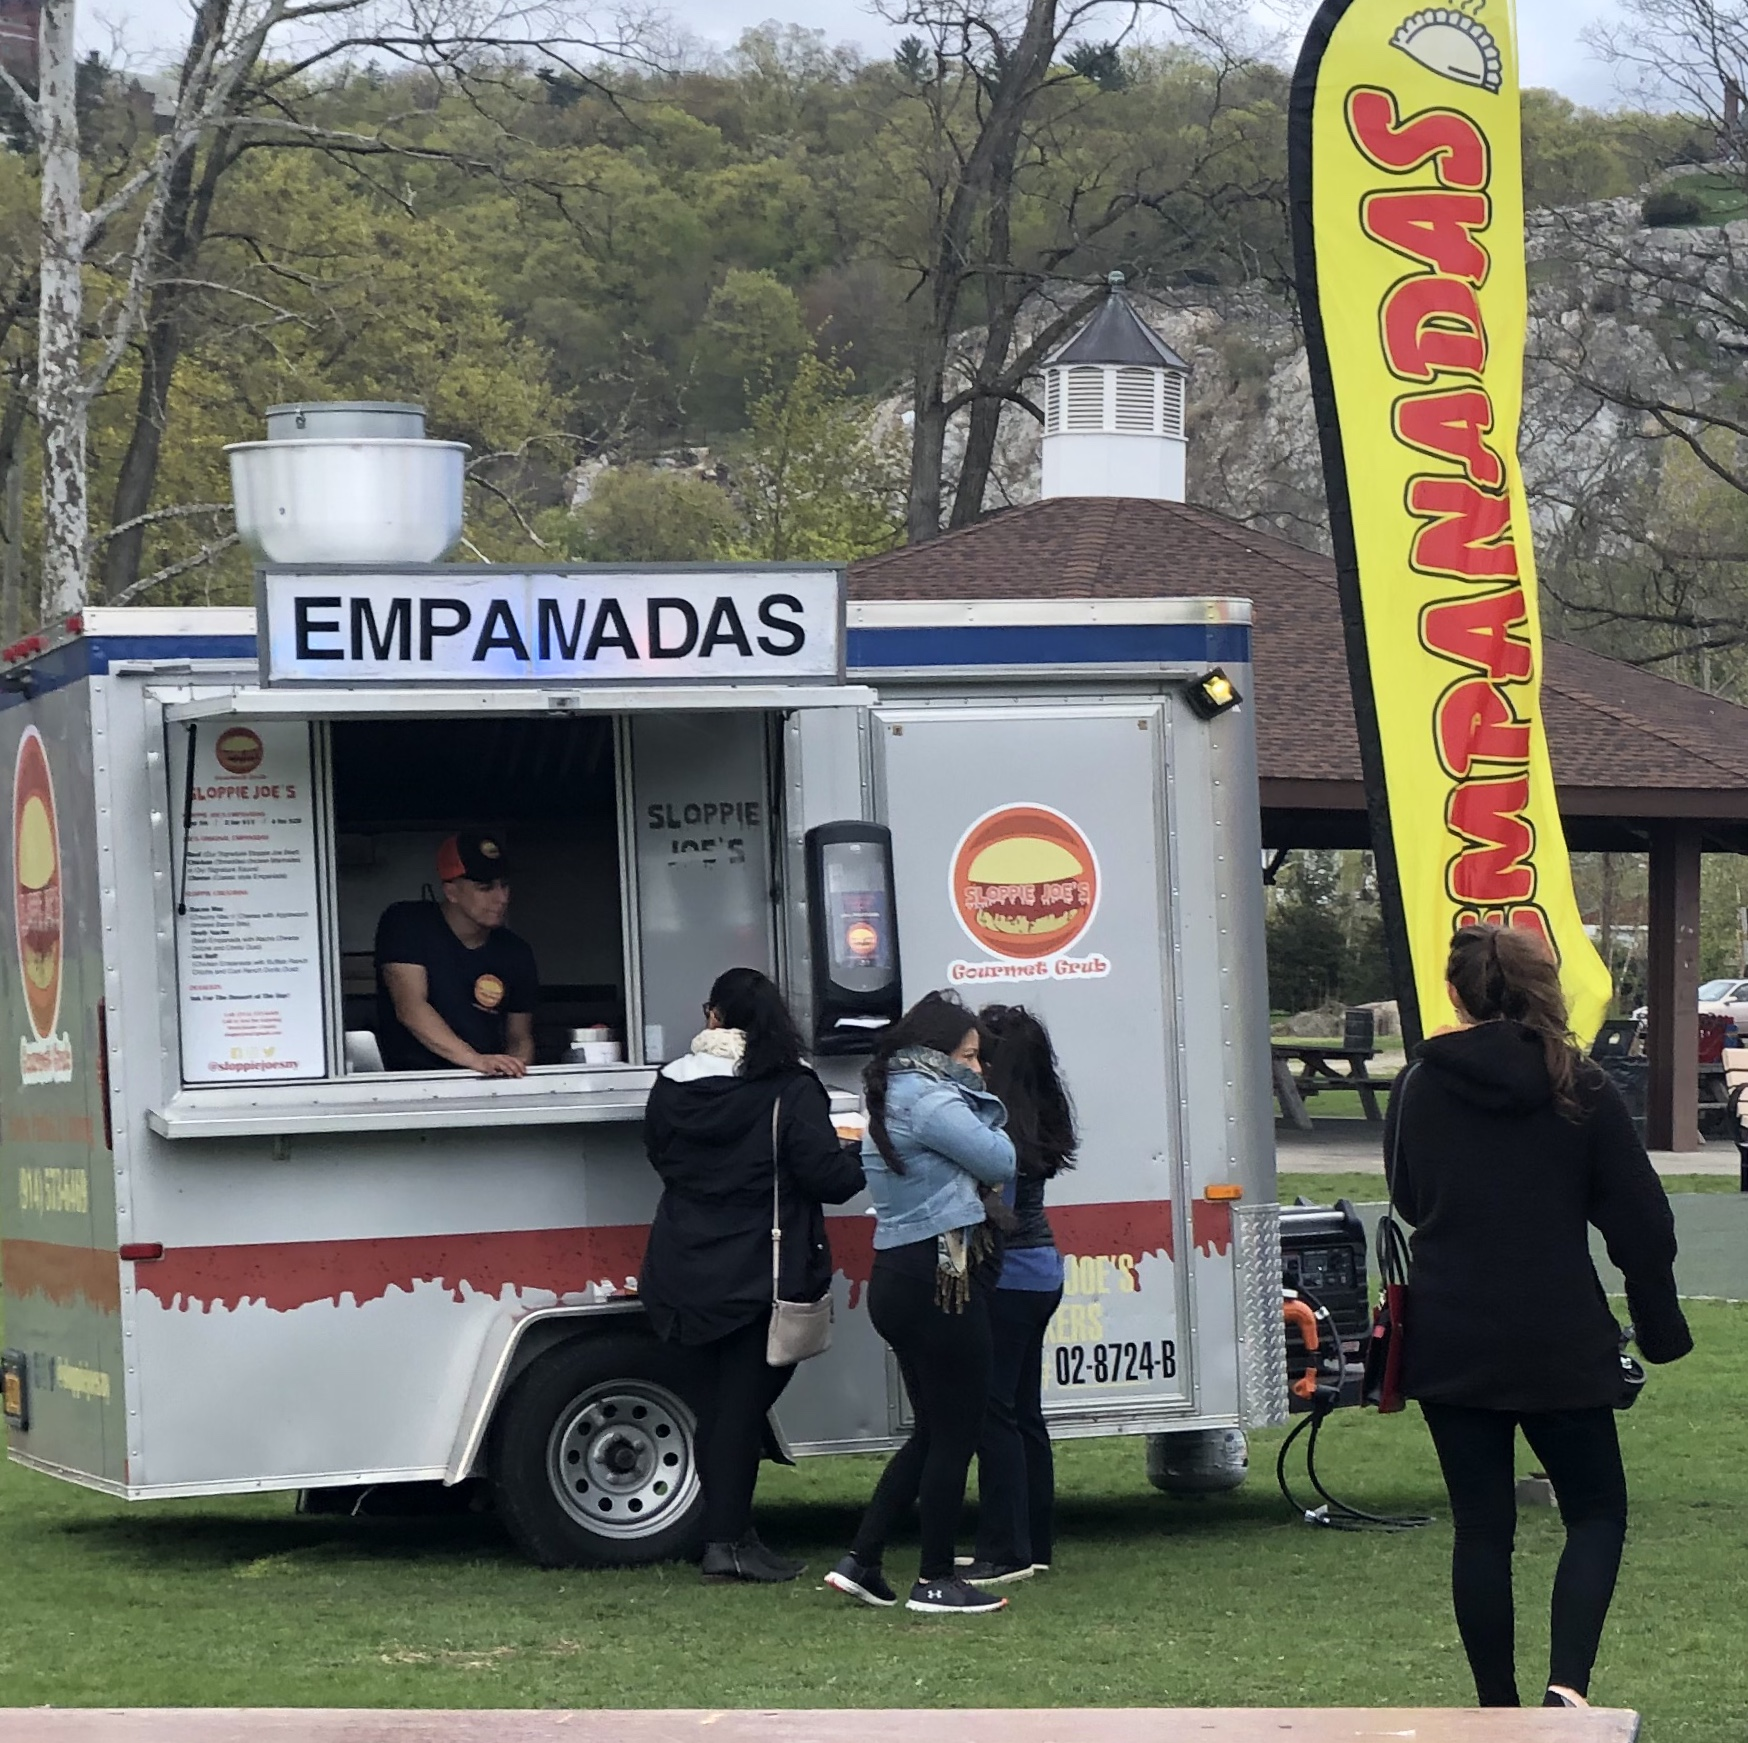 Sloppie Joe's Food Cart